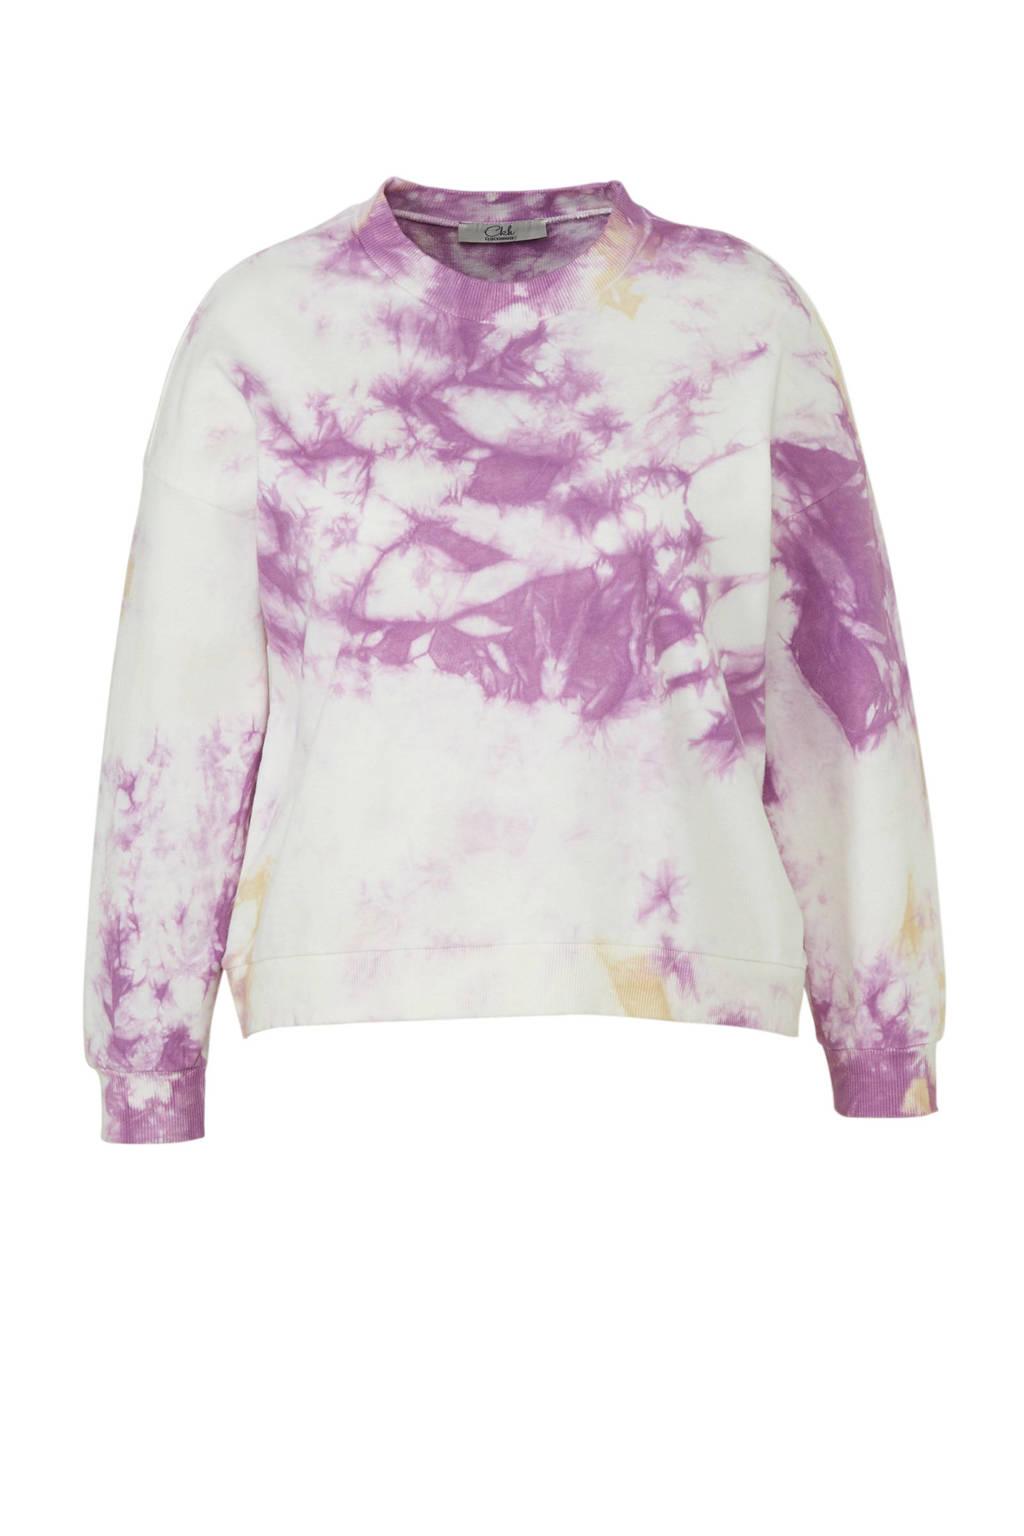 C&A XL Clockhouse tie-dye trui wit/paars, Wit/paars